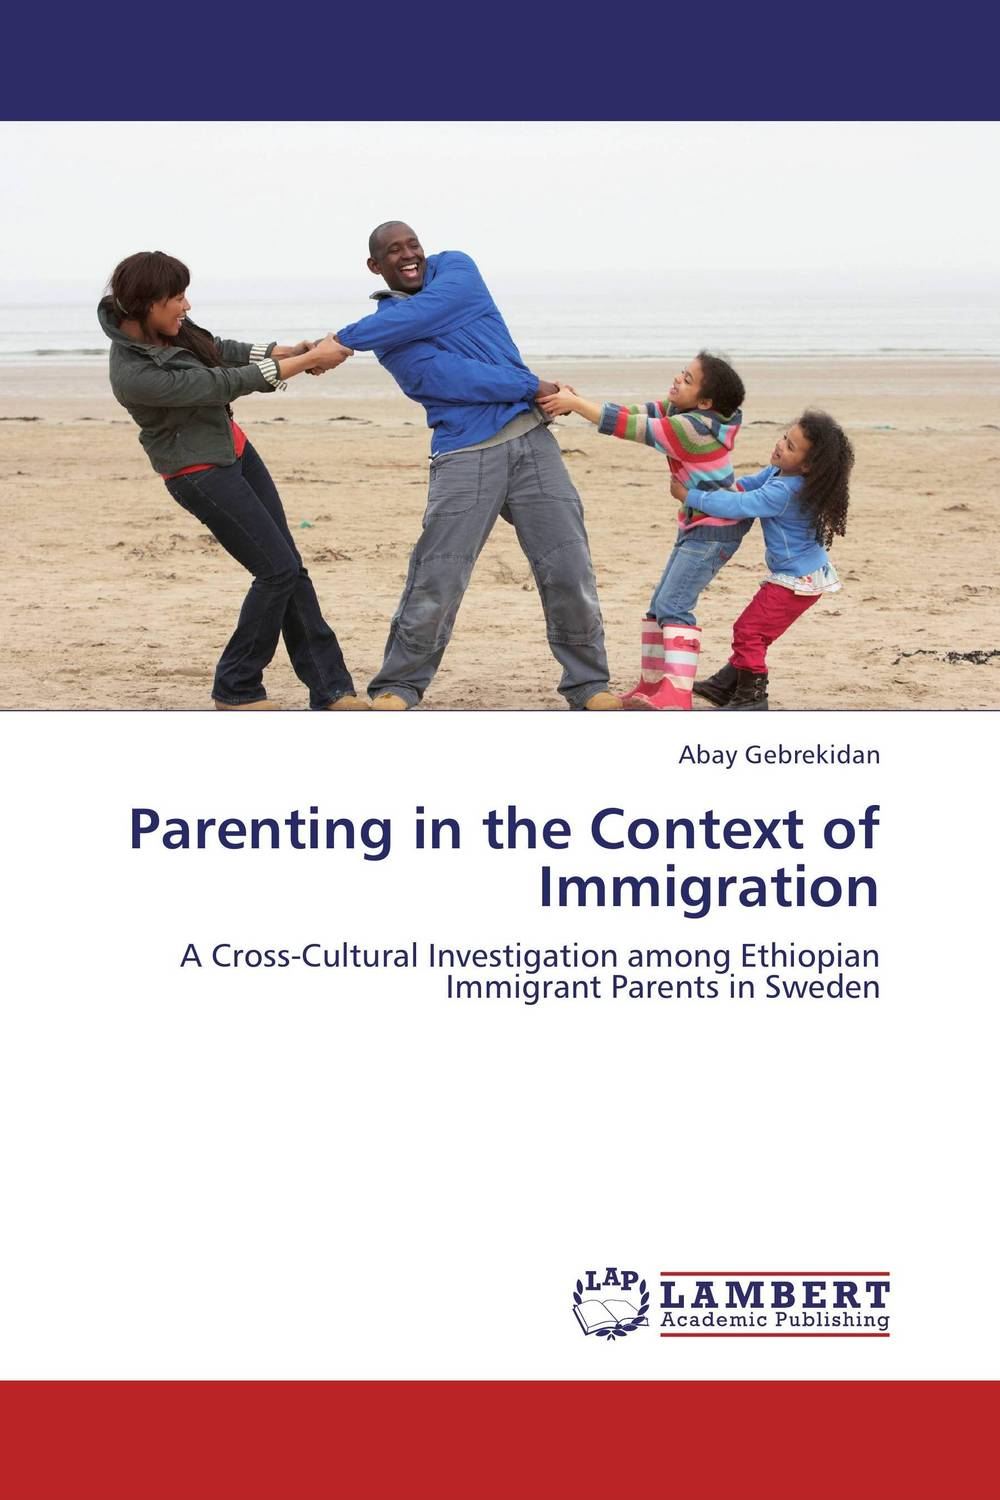 Parenting in the Context of Immigration managing integration of immigrant youth